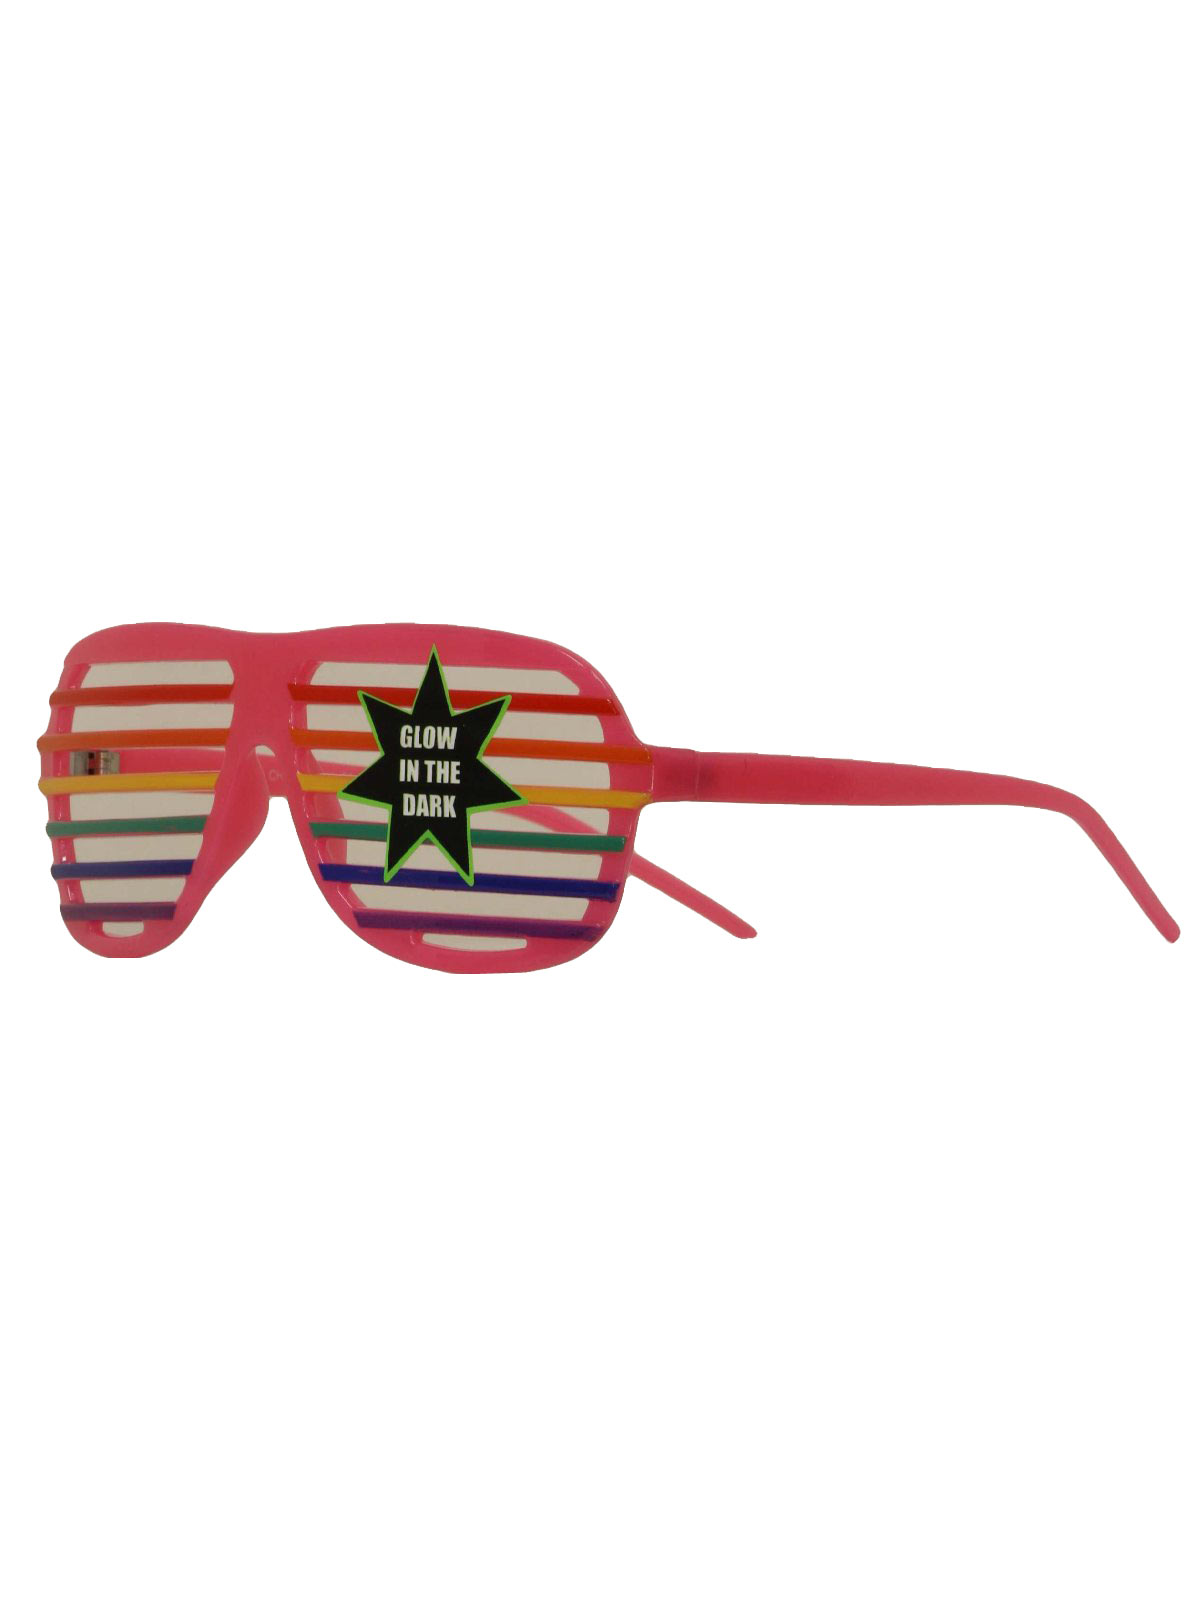 f7c25aba89 80 s Vintage Glasses  80s style -Glow In the Dark- Unisex plastic glow in  the dark totall 80s shutter shades glasses with PINK frame and red